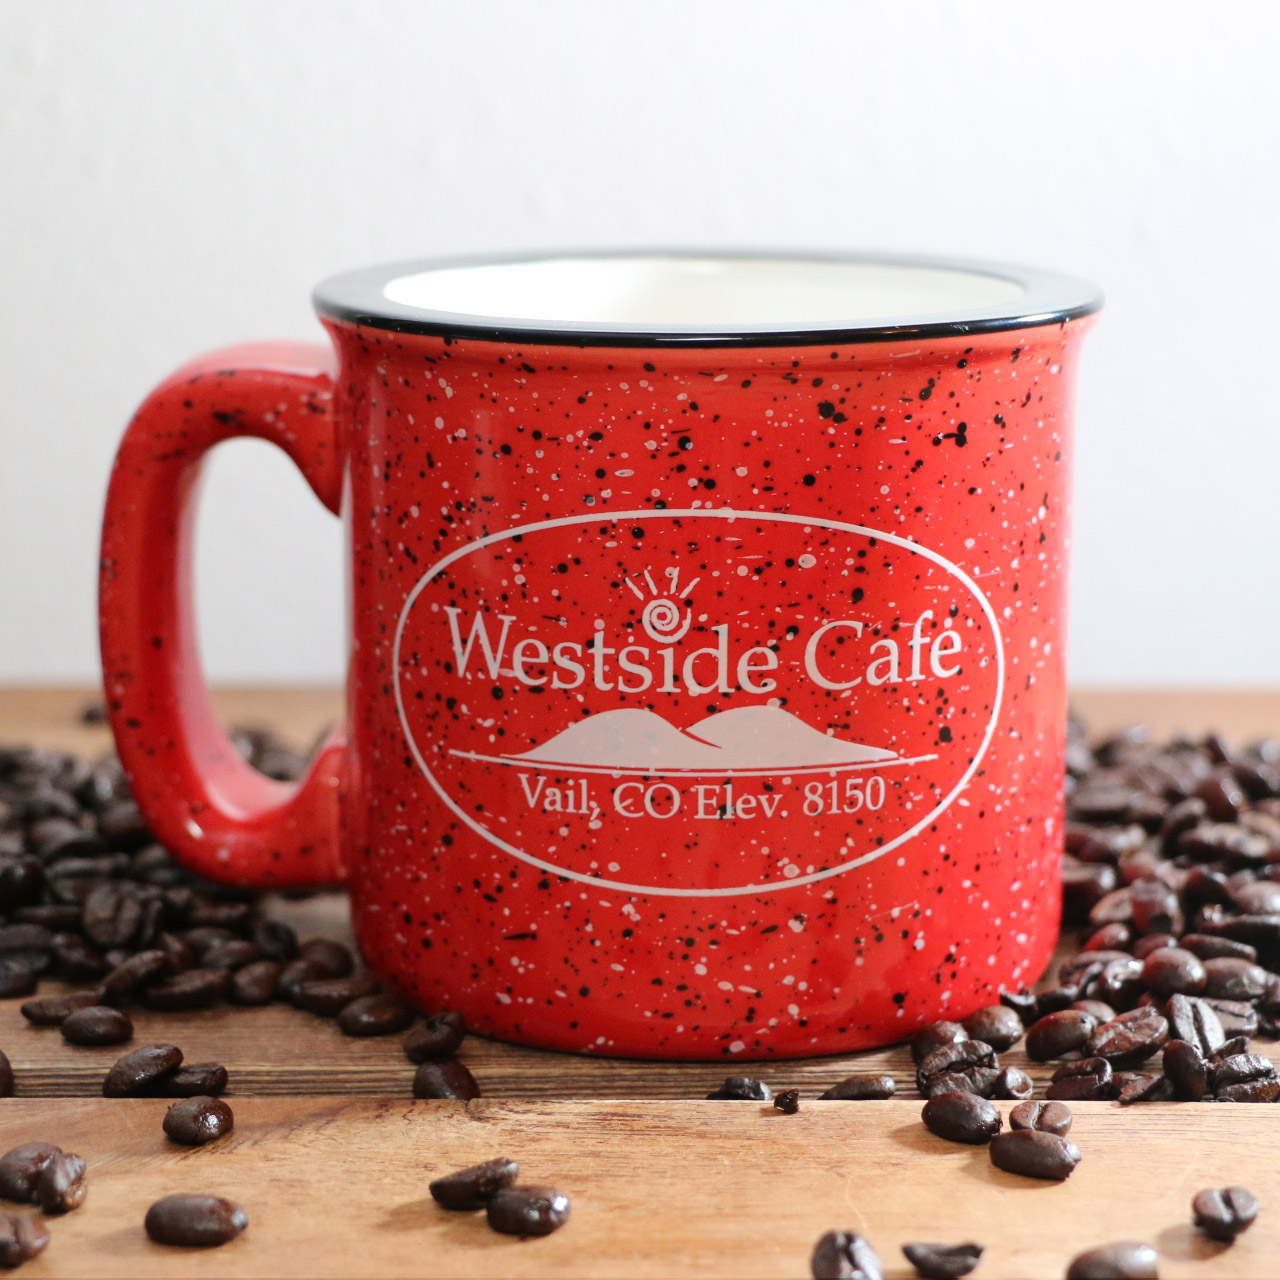 Red Mug from Westside Cafe